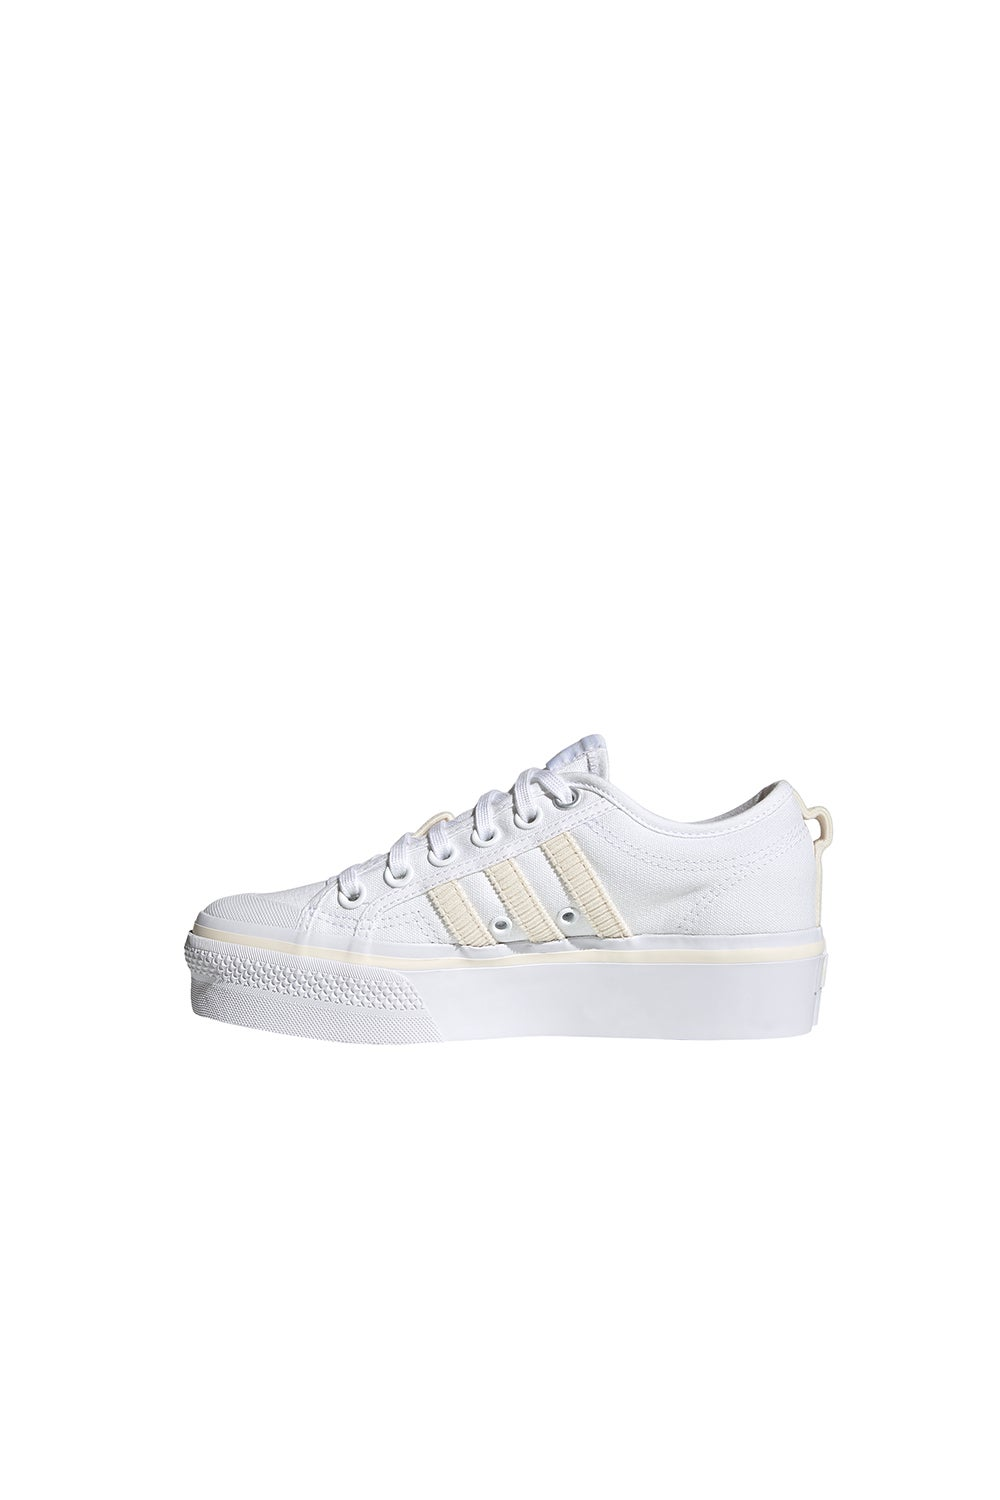 adidas Nizza Platform Off White/Cream